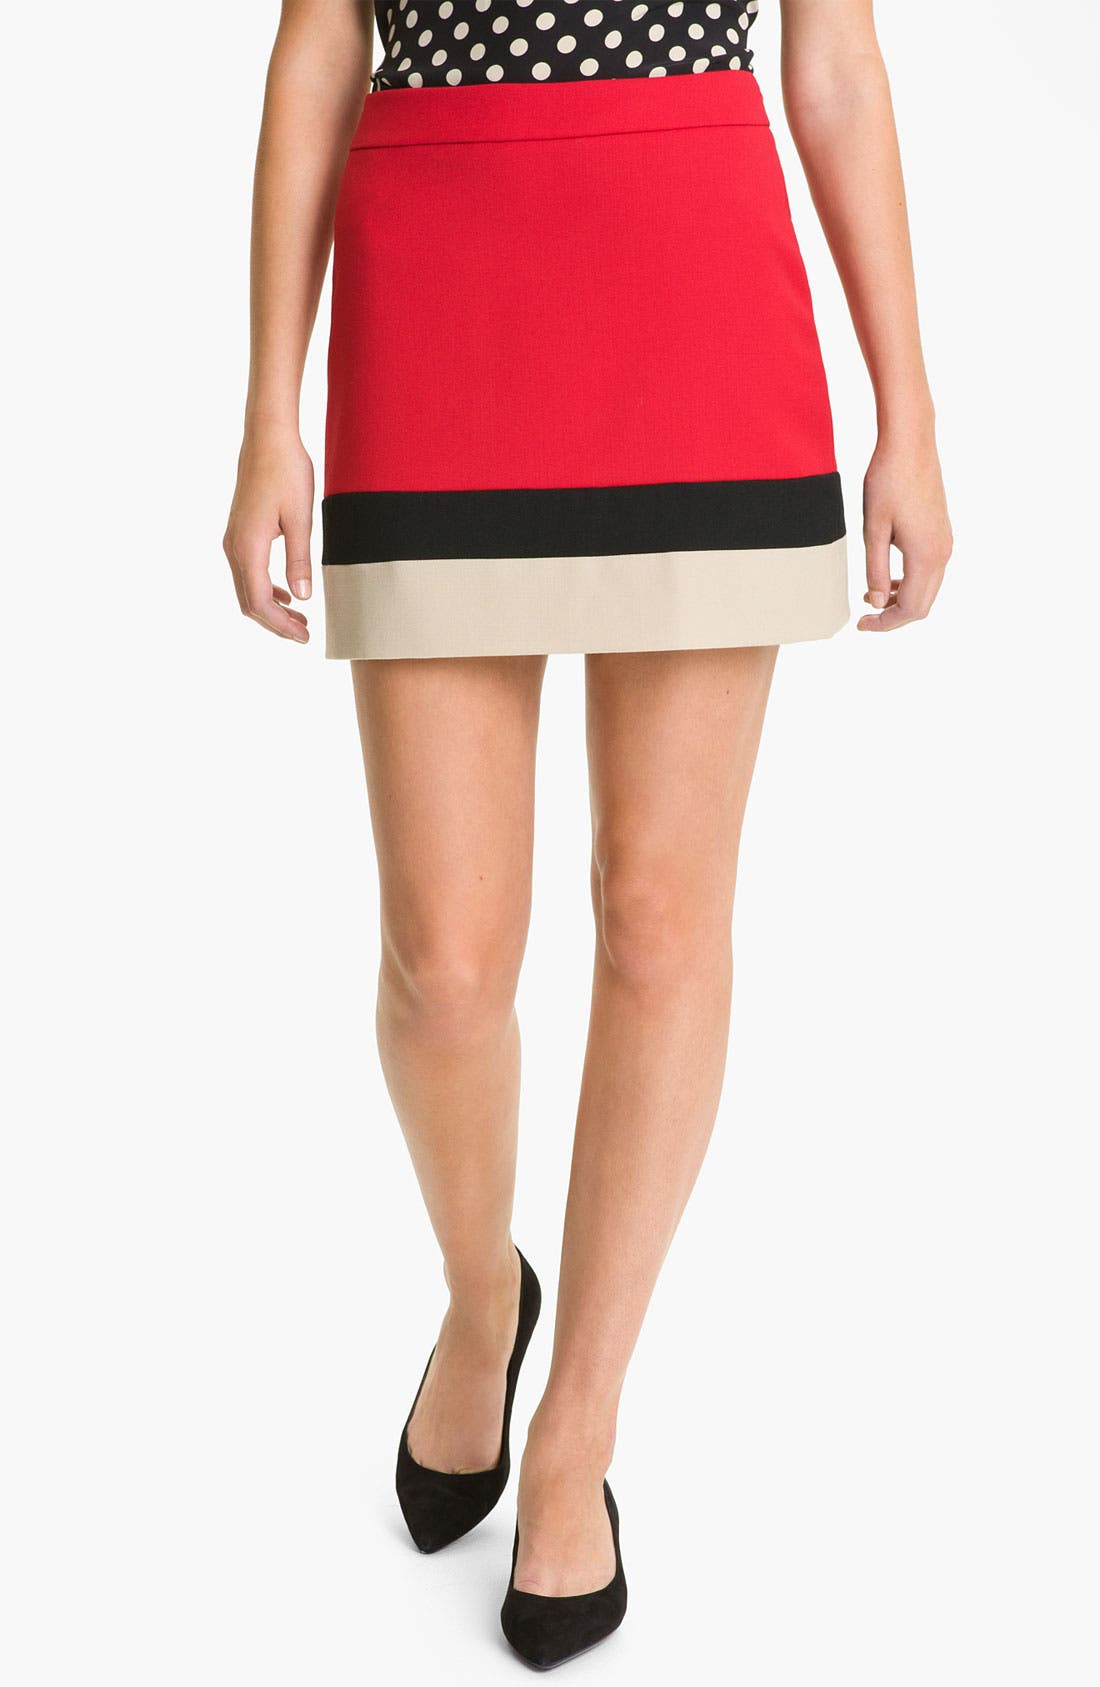 Alternate Image 1 Selected - kate spade new york 'evan' wool skirt (Online Exclusive)